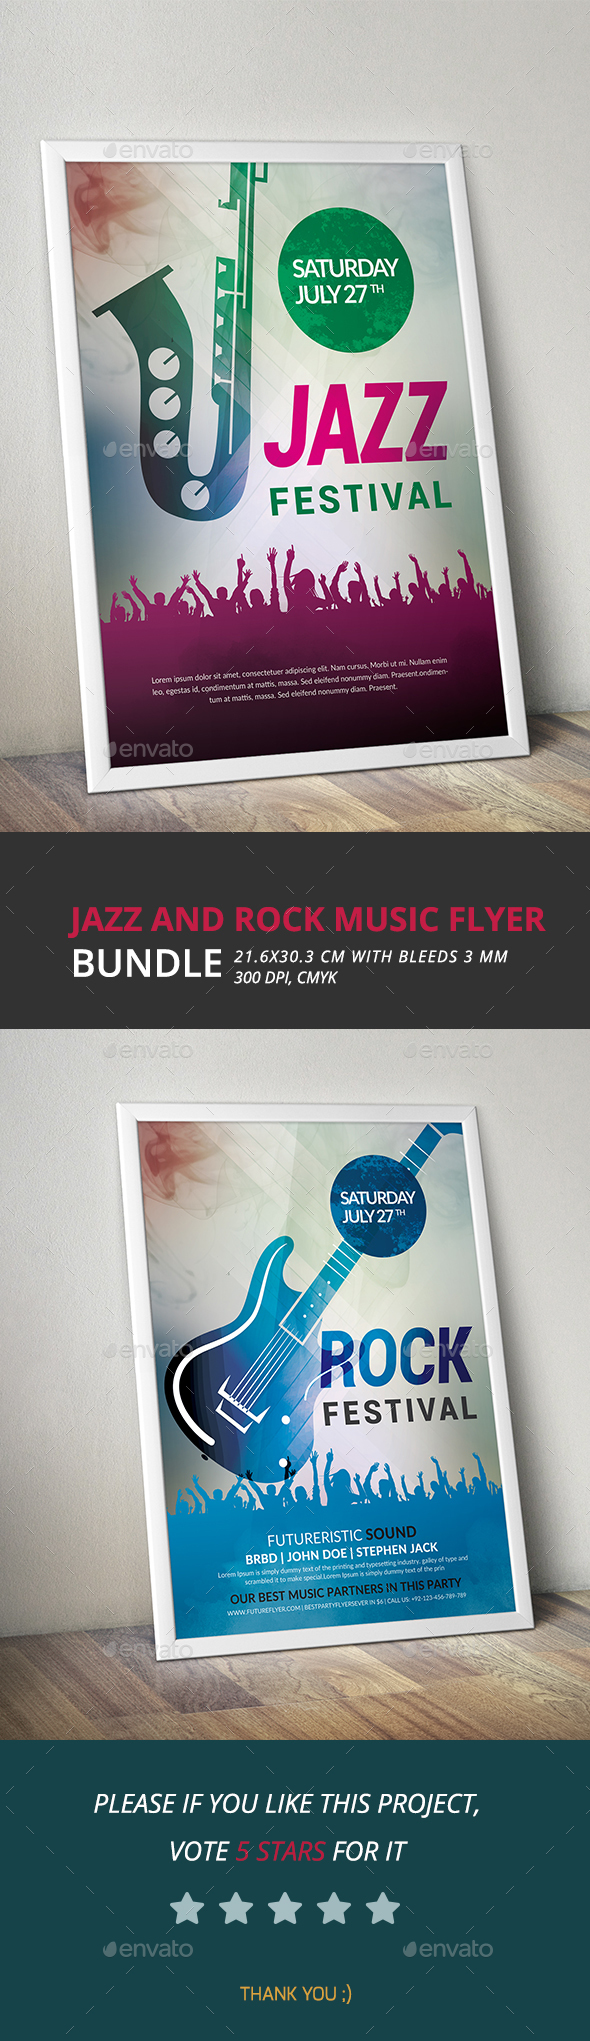 Jazz and Rock Music Flyer Bundle - Clubs & Parties Events